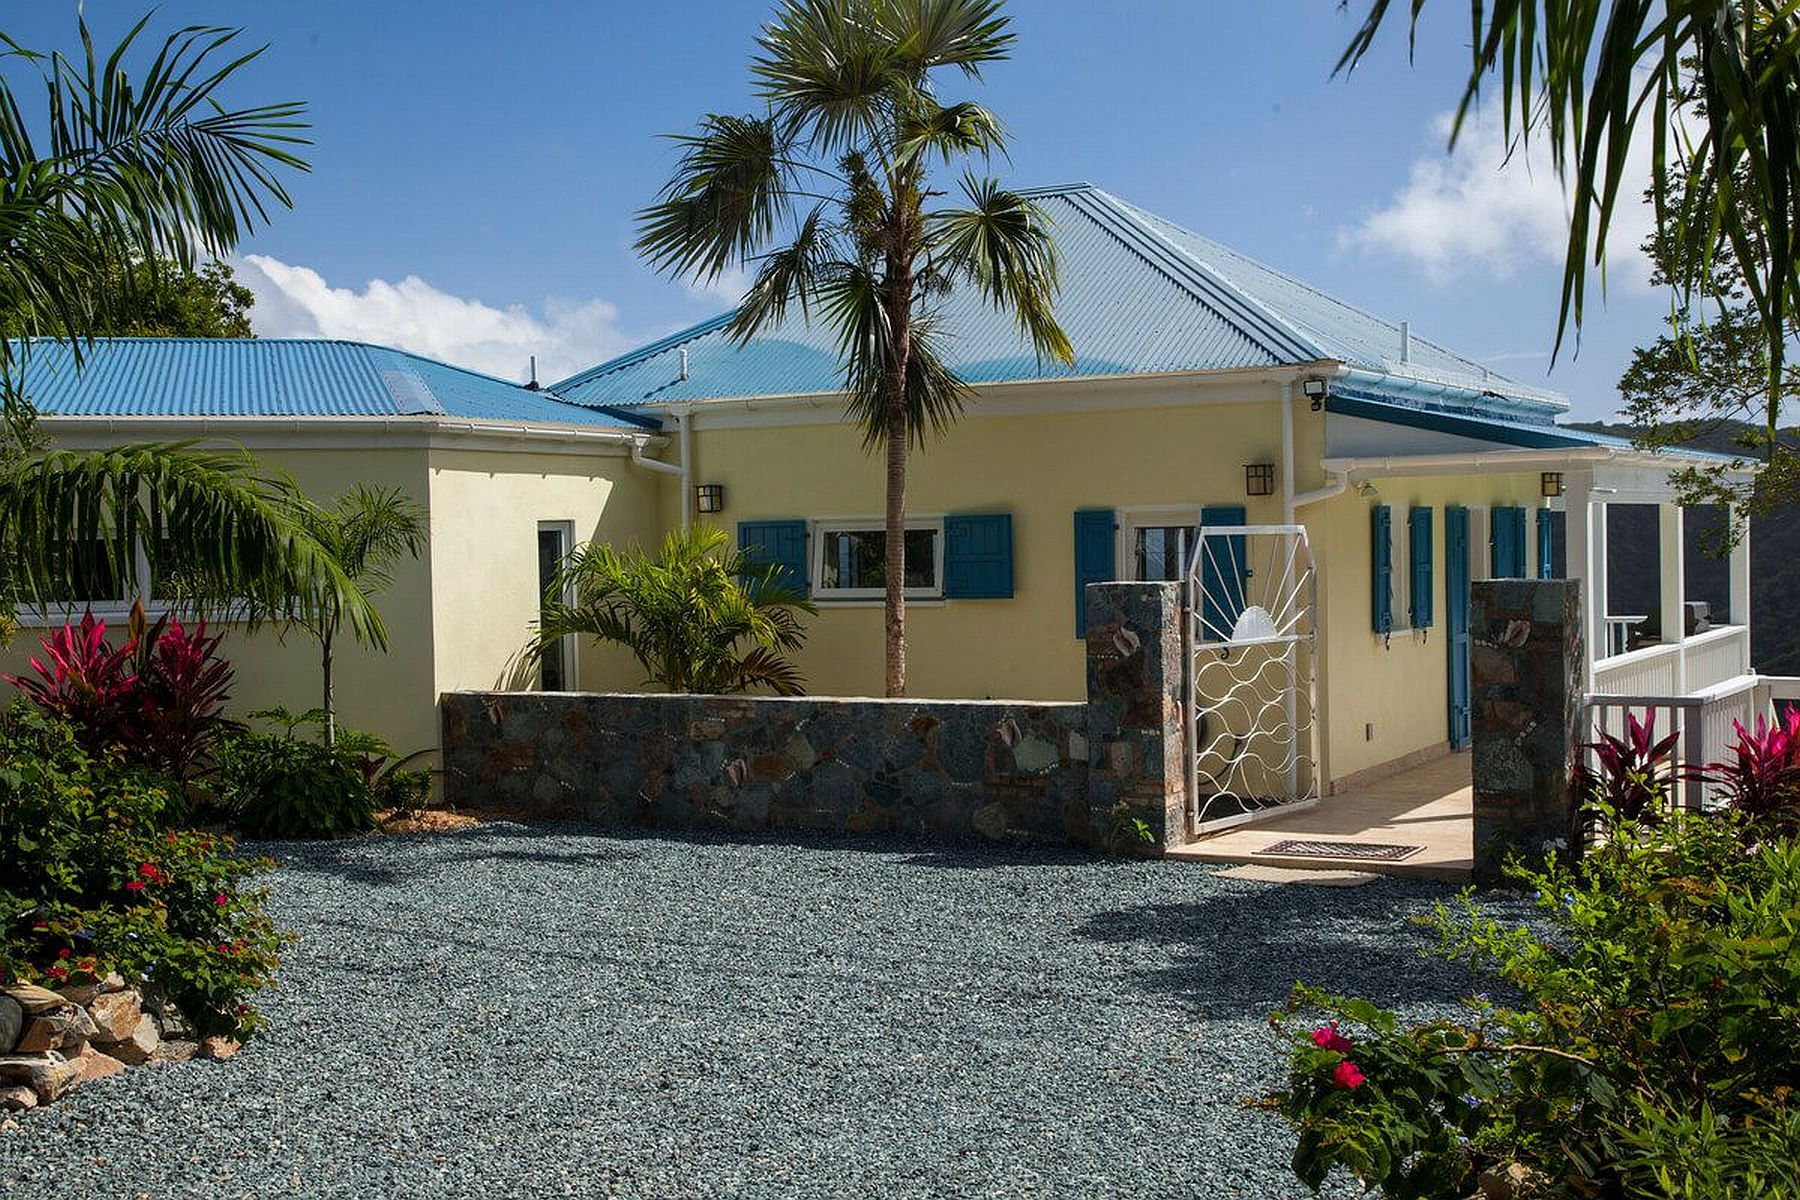 Single Family Home for Sale at All About the View 8-A-A Estate Carolina St John, Virgin Islands 00830 United States Virgin Islands